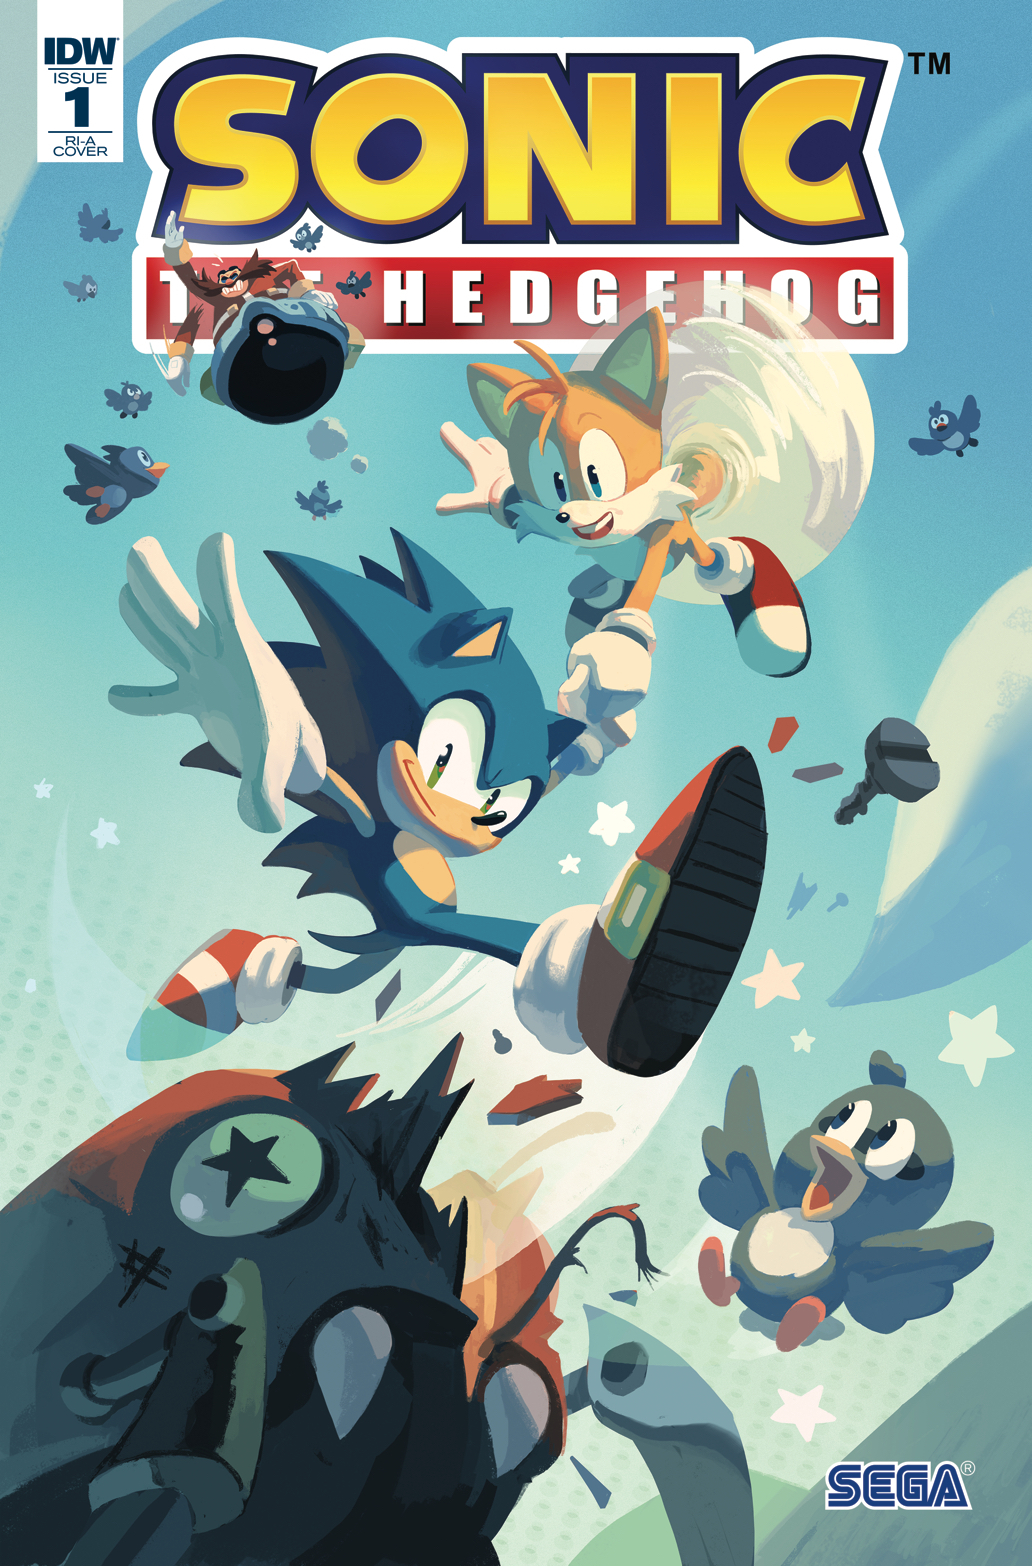 Idw Sonic The Hedgehog Issue 1 Sonic News Network Fandom